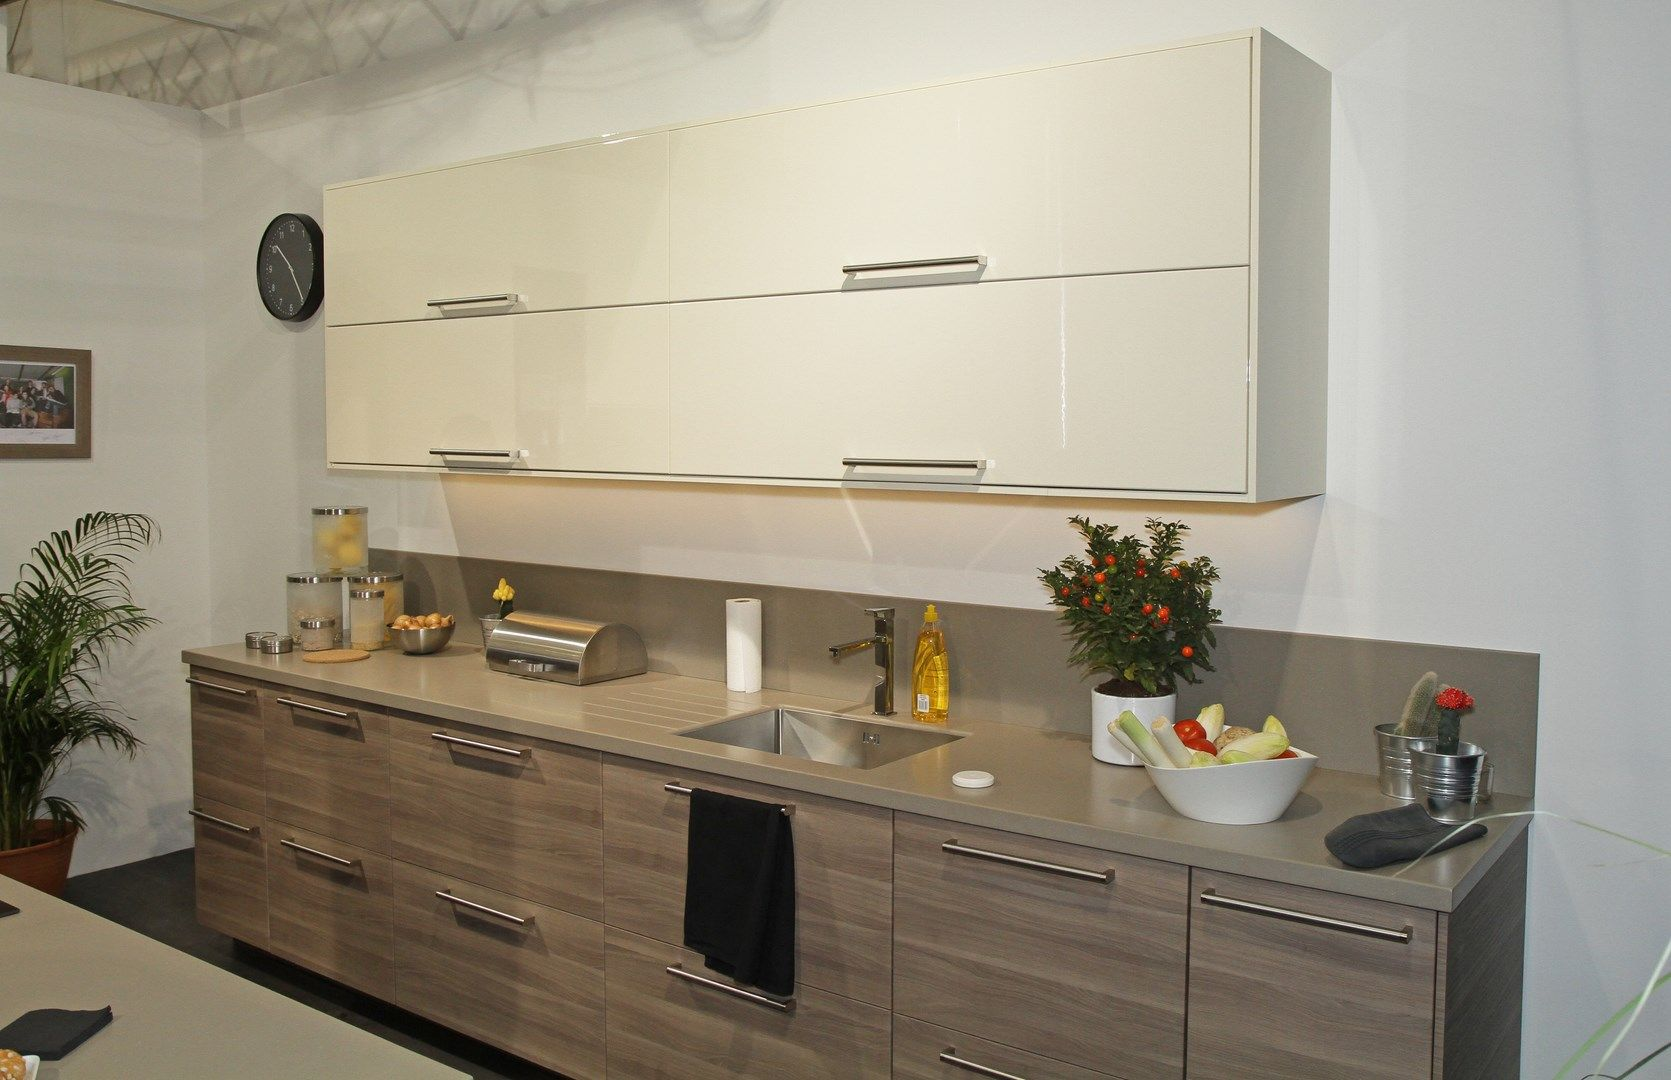 Ikea Brokhult Küche Single Wall Kitchen Ikea Brokhult Google Search